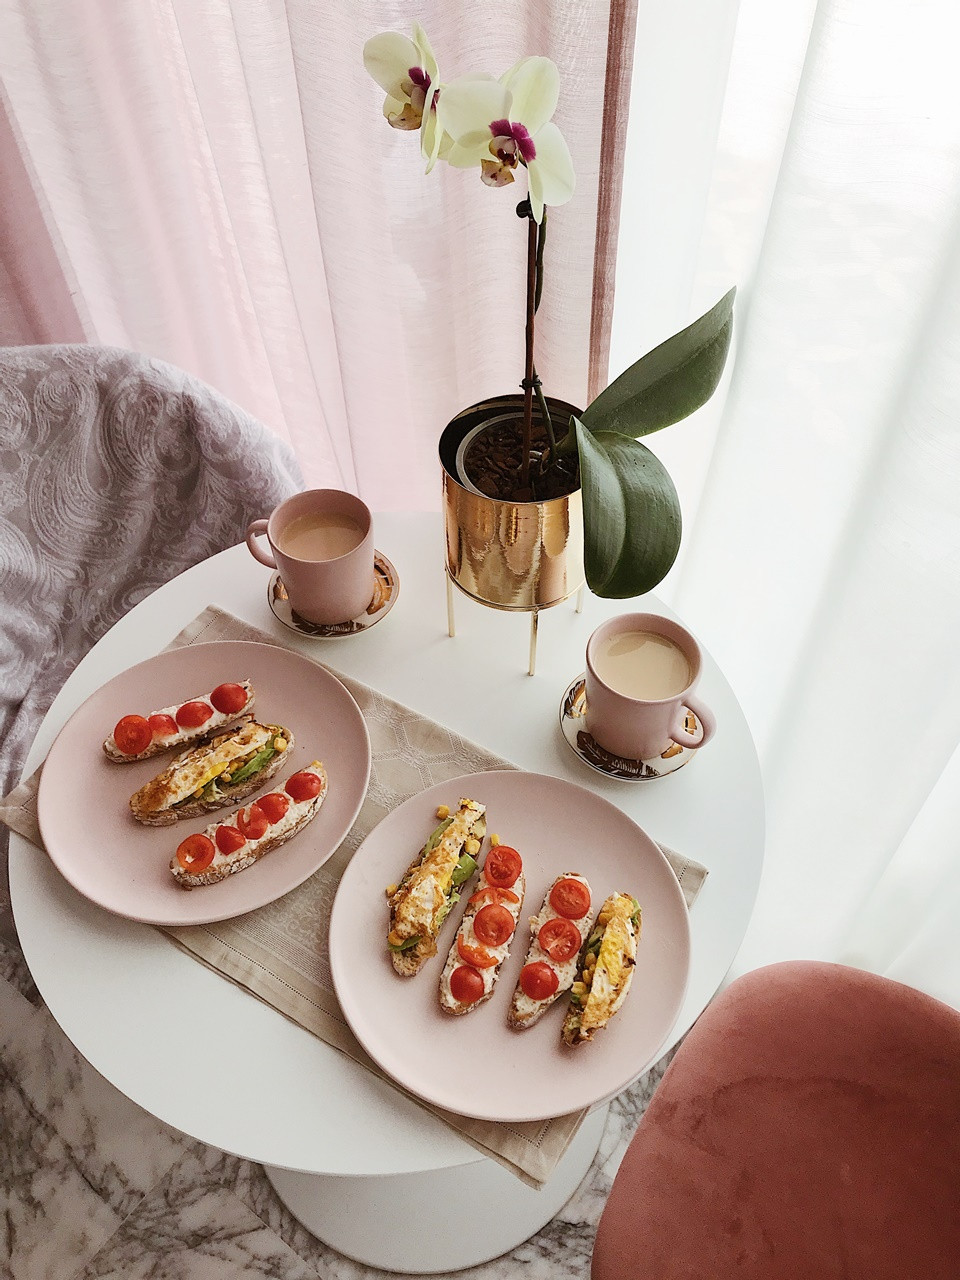 larisa costea, larisa costea blog, recipe, food, fewd, foodie, larisa costea breakfast, pinterest breakfast, nice table set, breakfast table set, pink bowls, instagramable breakfast, avo toast, avo eggs, croissants, acai bowl, chia seeds, oatmeal, oats, granola, fruits, pamcakes, american pancakes, msemene, morocan pancakes, croissant, omelet, omlette, dried tomatoes, healthy breakfast ideas, delicious breakfast, mic dejun sanatos, mic dejun delicios, clatite pufoase, clatite americane, what to feed your kid in teh morning, breakfast addicted, brunch, fancy breakfast, fancy brunch, breakfast party